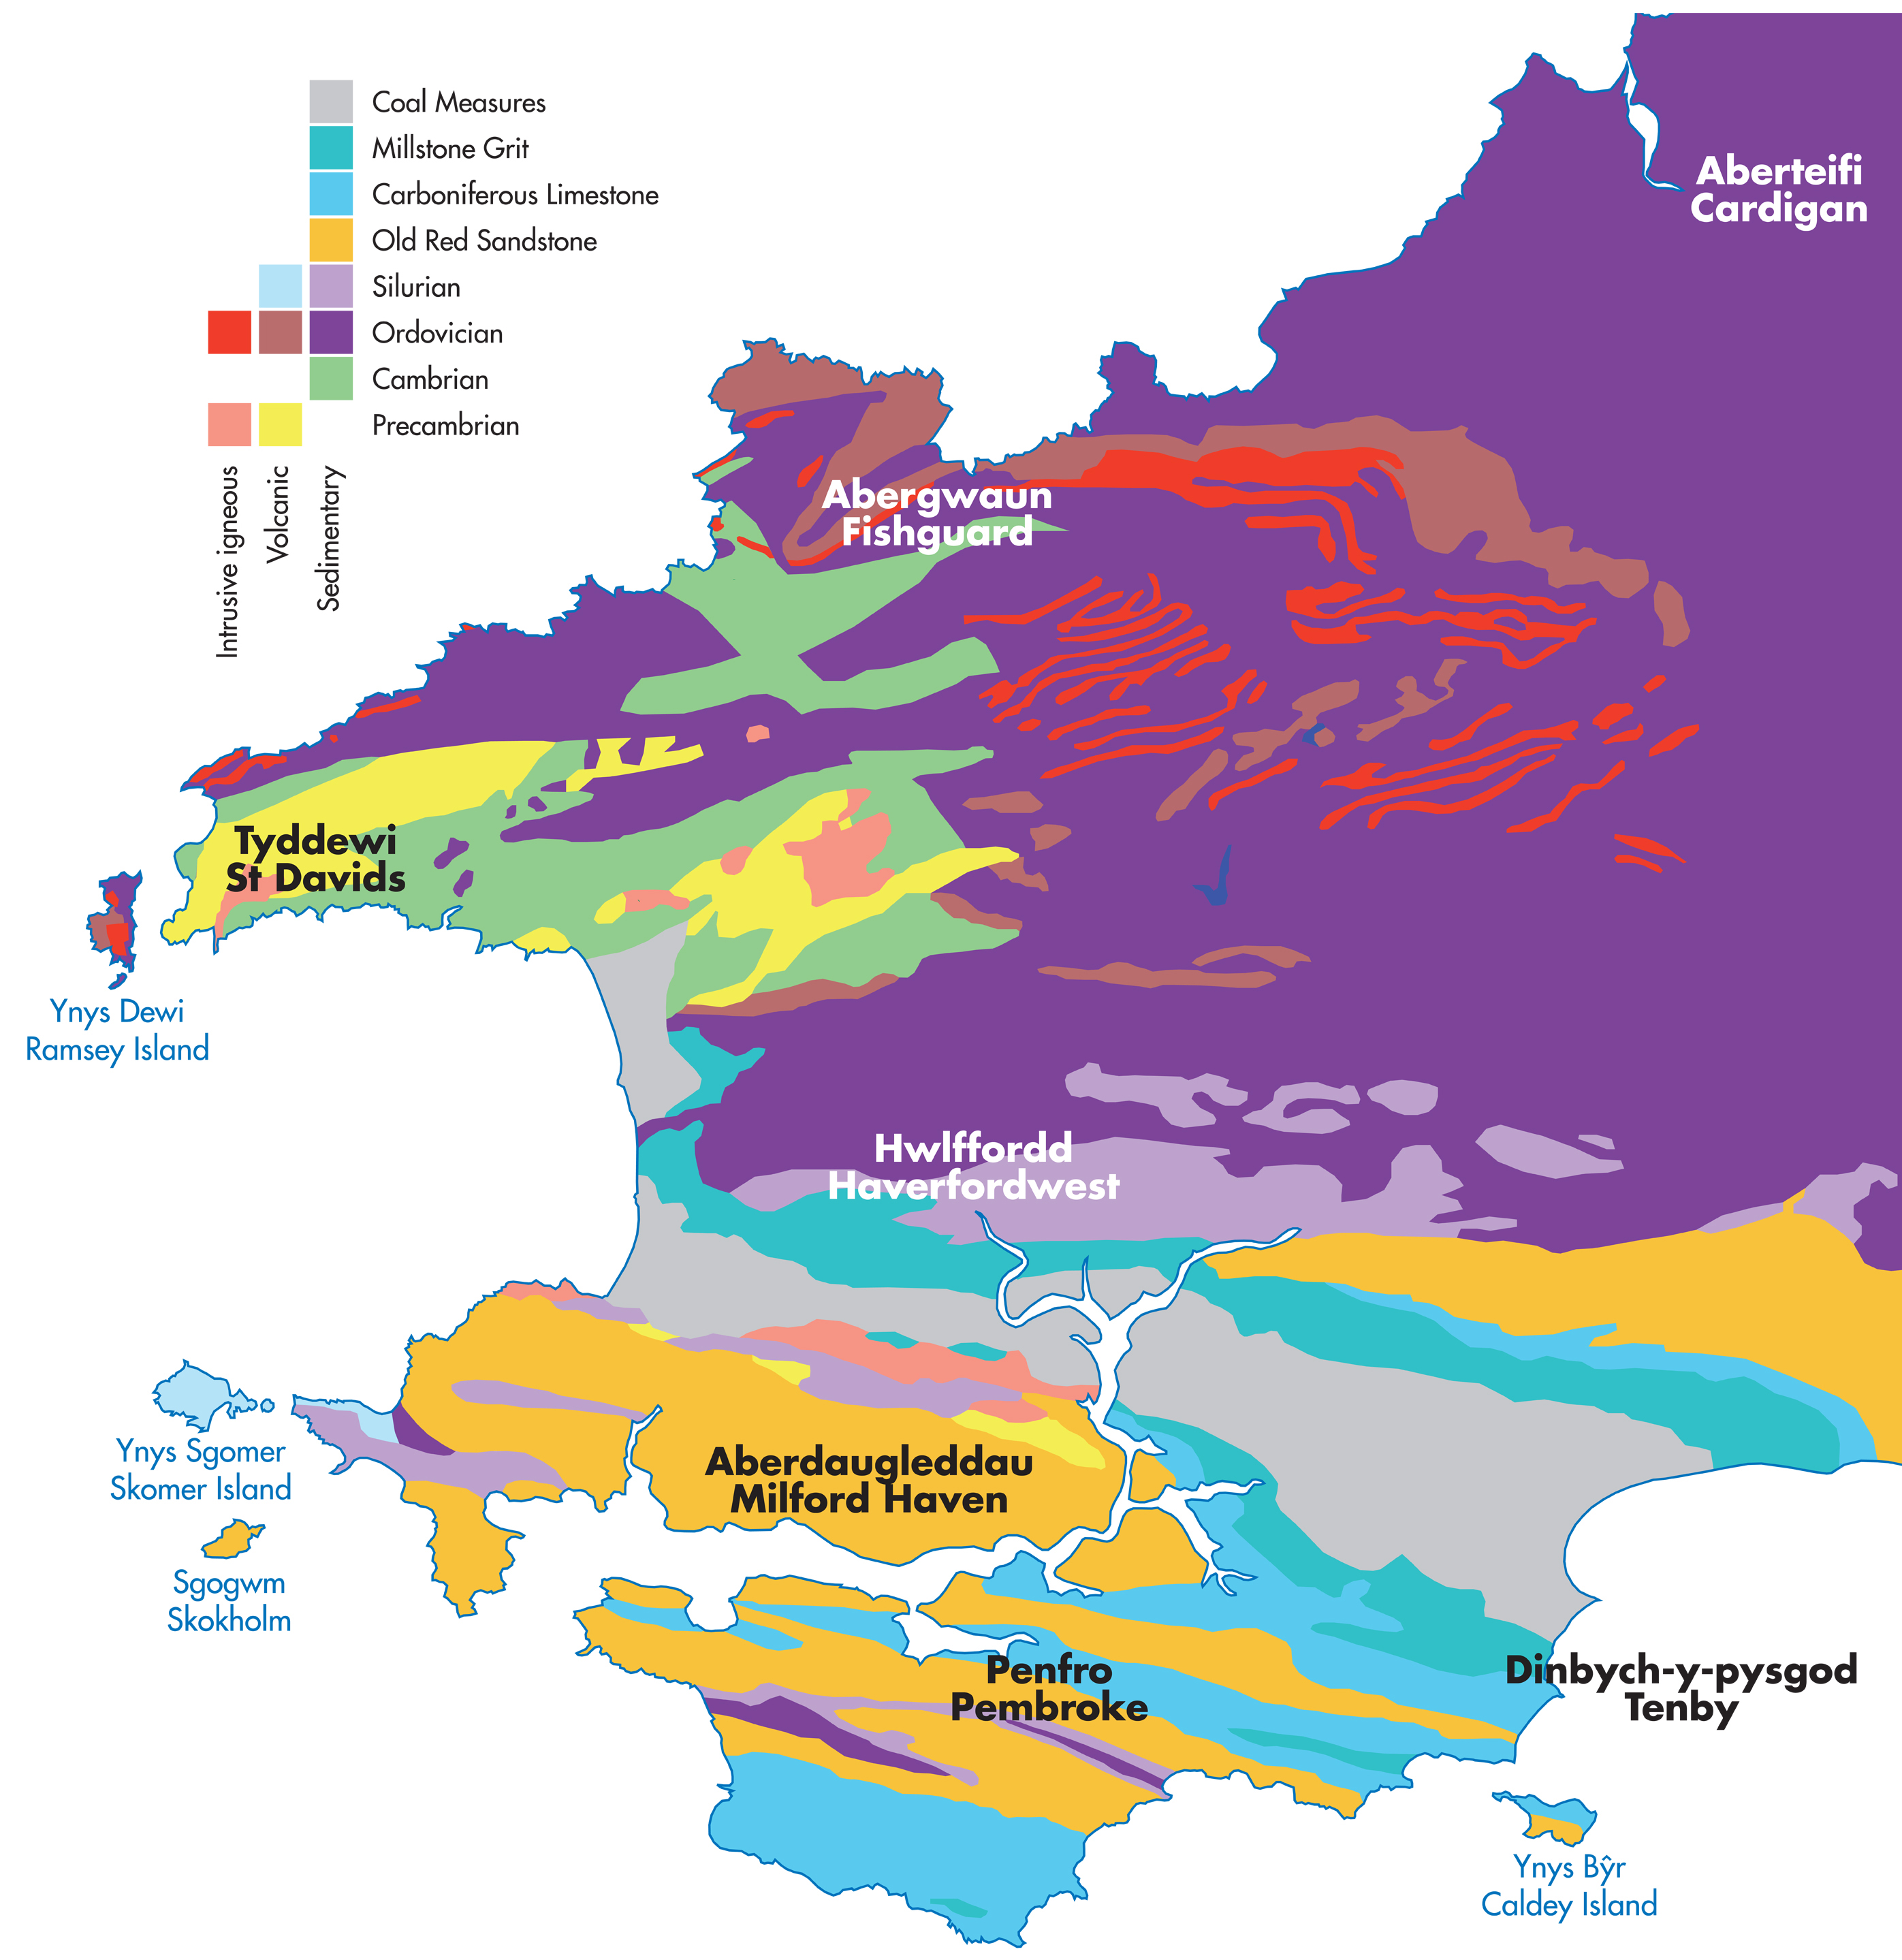 Map showing the Pembrokeshire's diverse geology